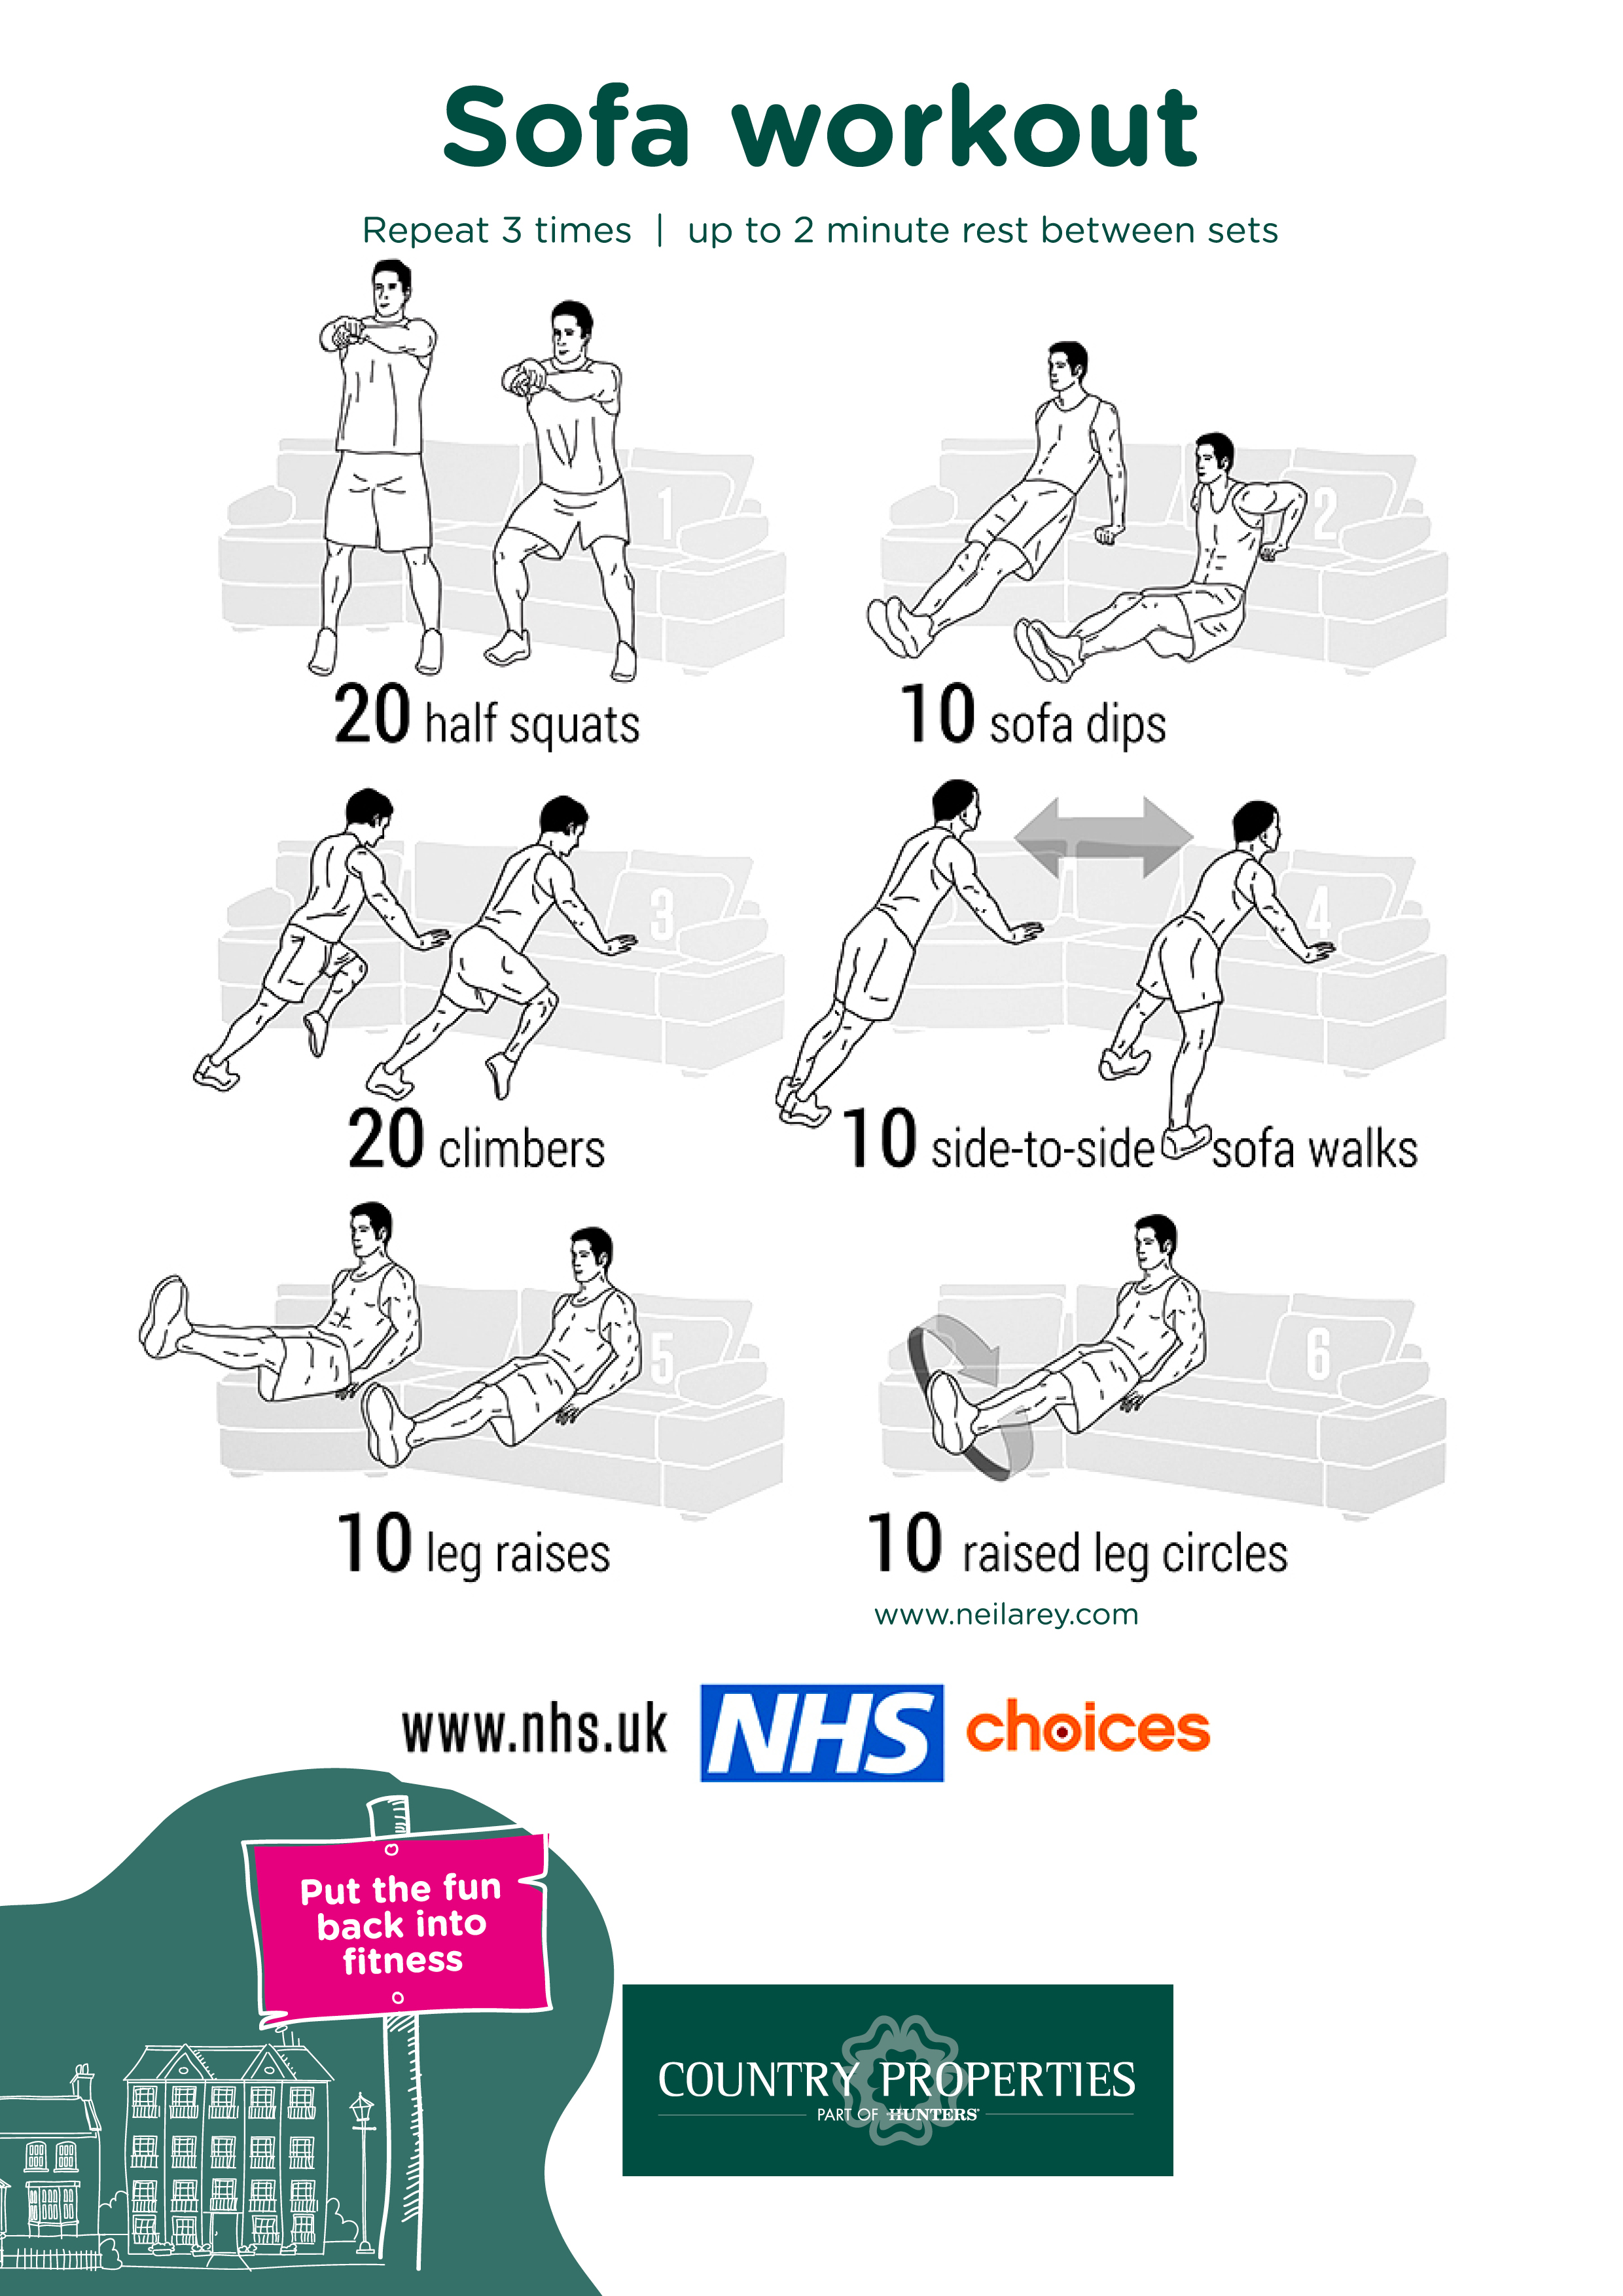 Country Properties Activity Zone - Exercise with sofa